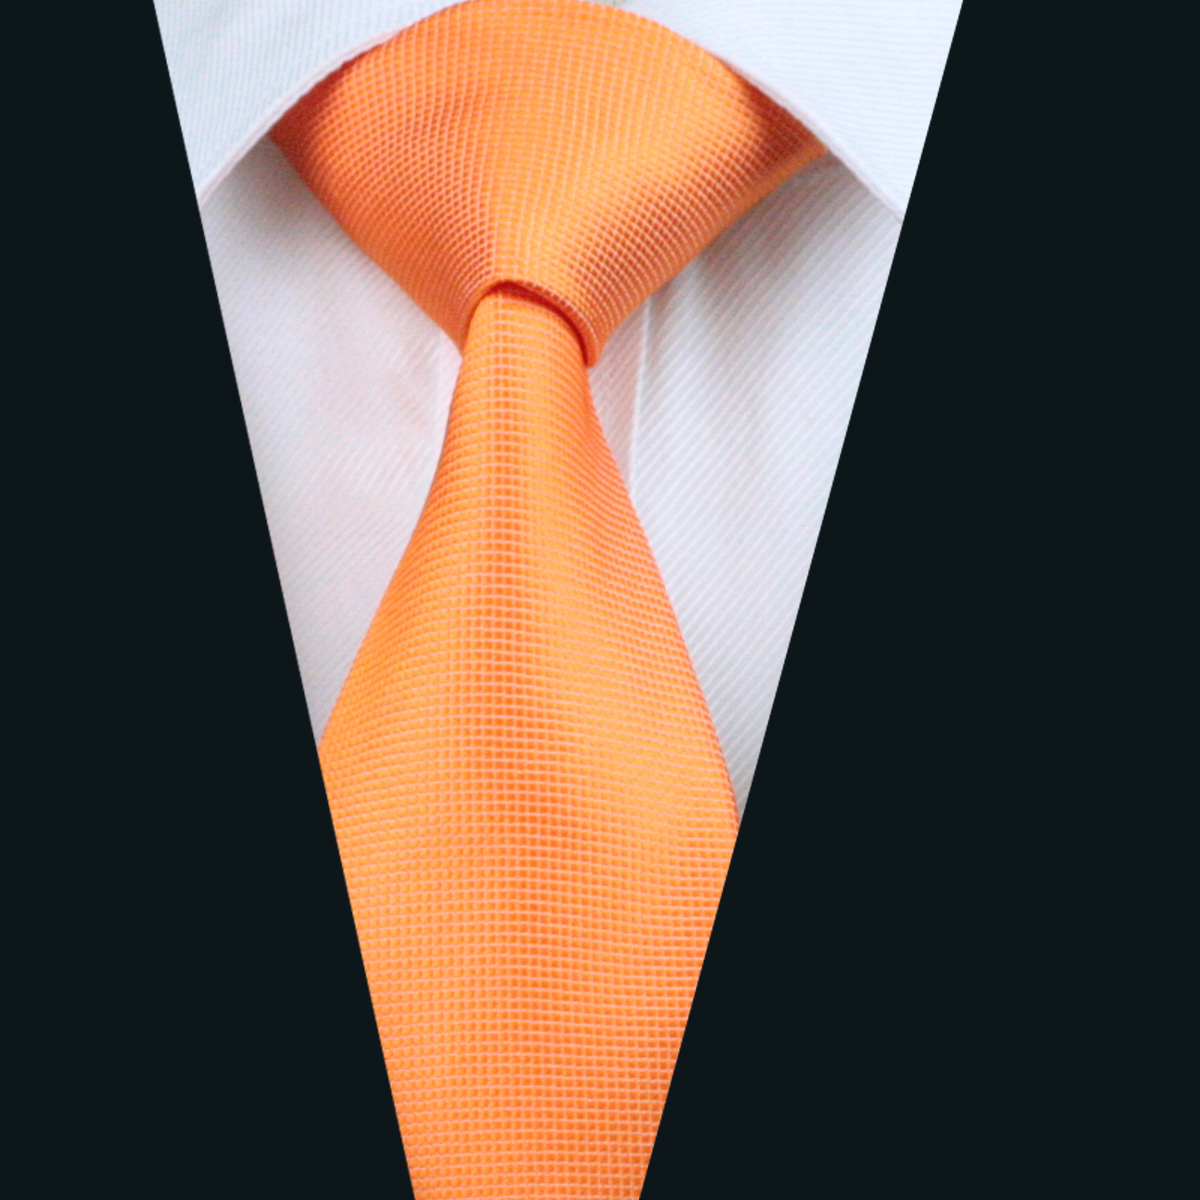 DH-266 Mens Silk Tie Orange Solid Neck Tie 100% Silk Jacquard Ties For Men Business Wedding Party Free Shipping